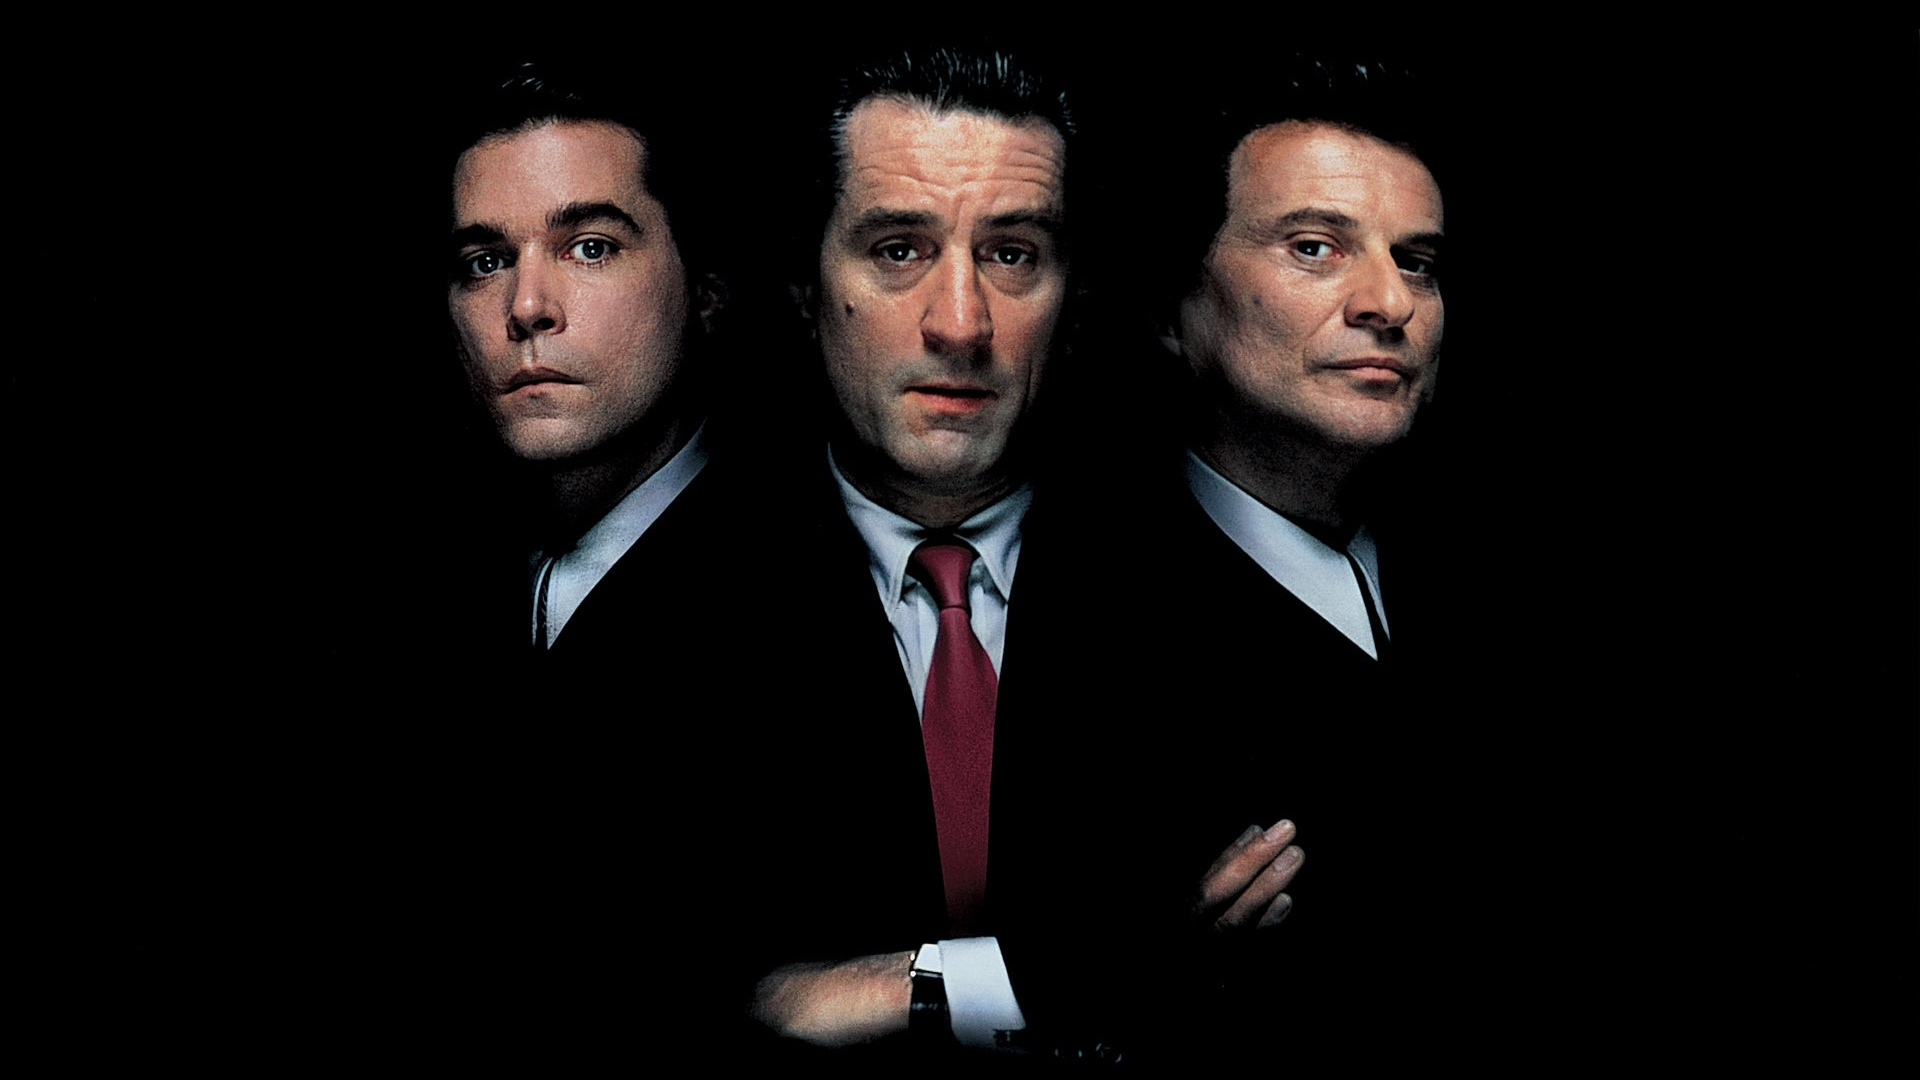 1920x1080 - Goodfellas Wallpapers 6